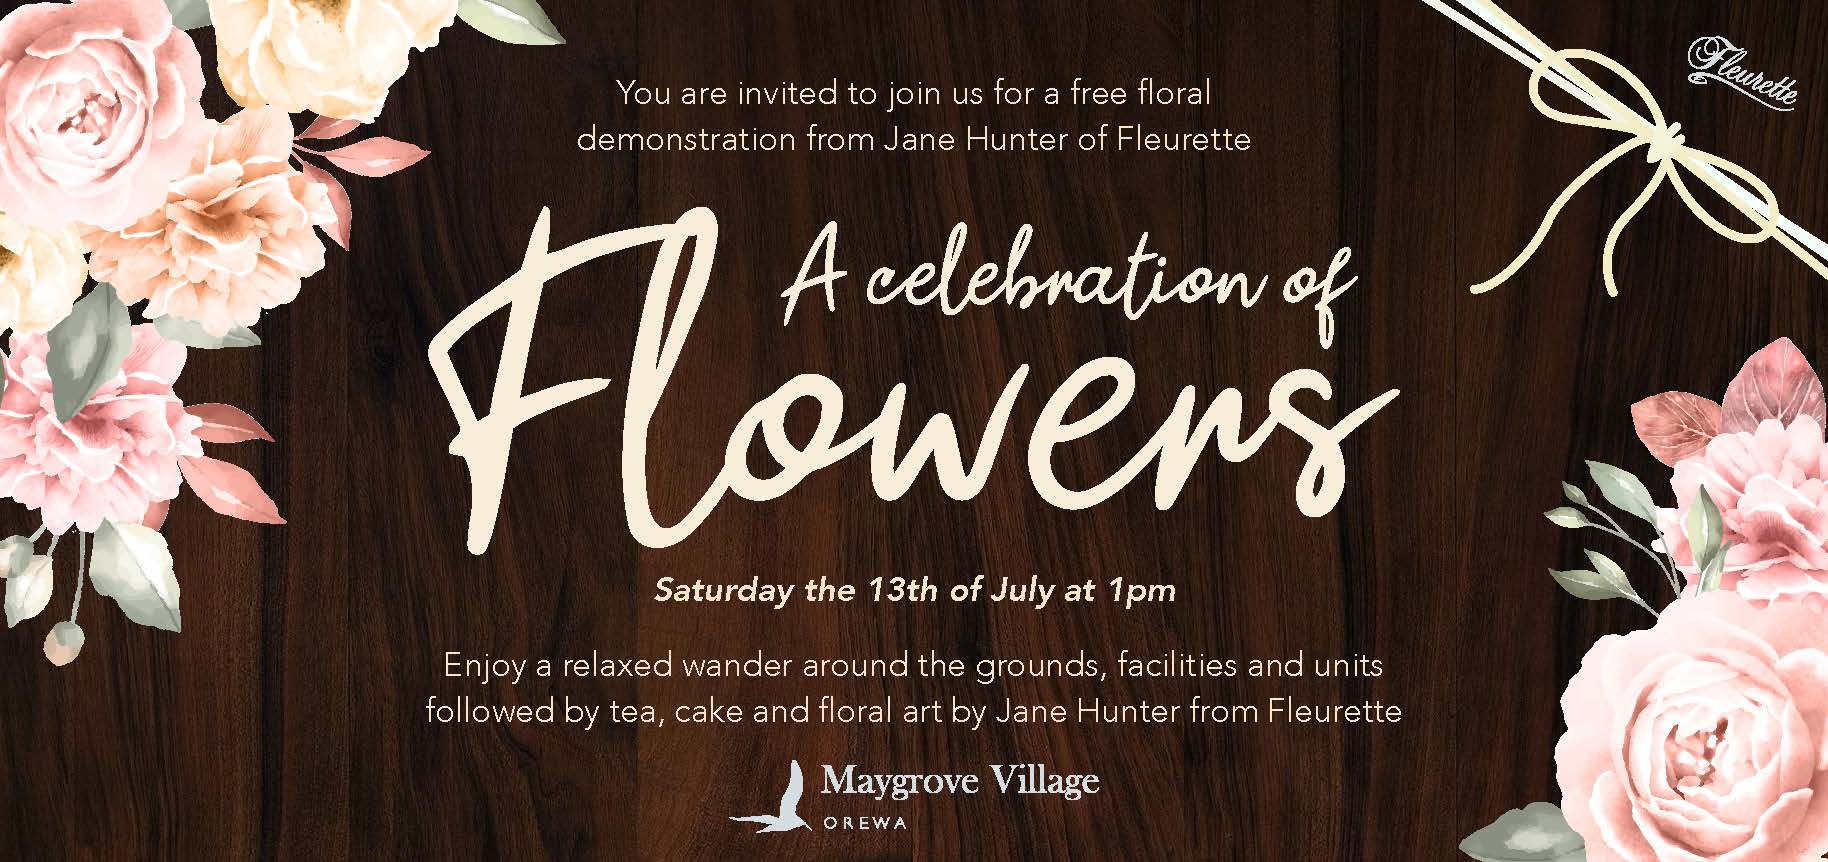 MGV_CelebrationofFlowers-Invite_DLEx99x210-13-June-19_Page_1.jpg